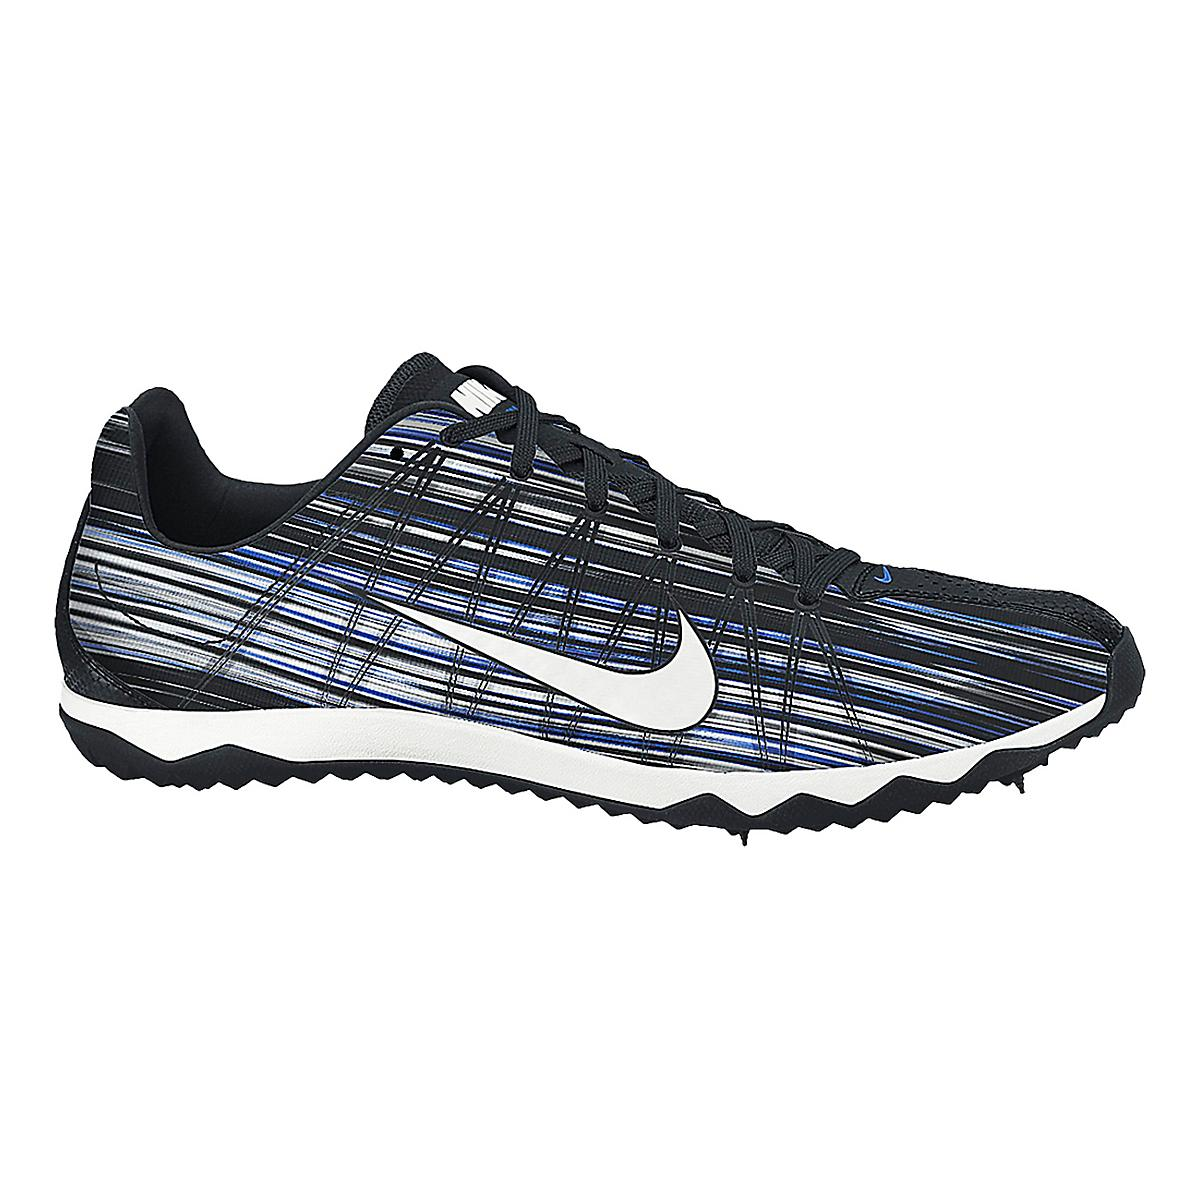 34012070 Mens Nike Zoom Rival XC Cross Country Shoe at Road Runner Sports